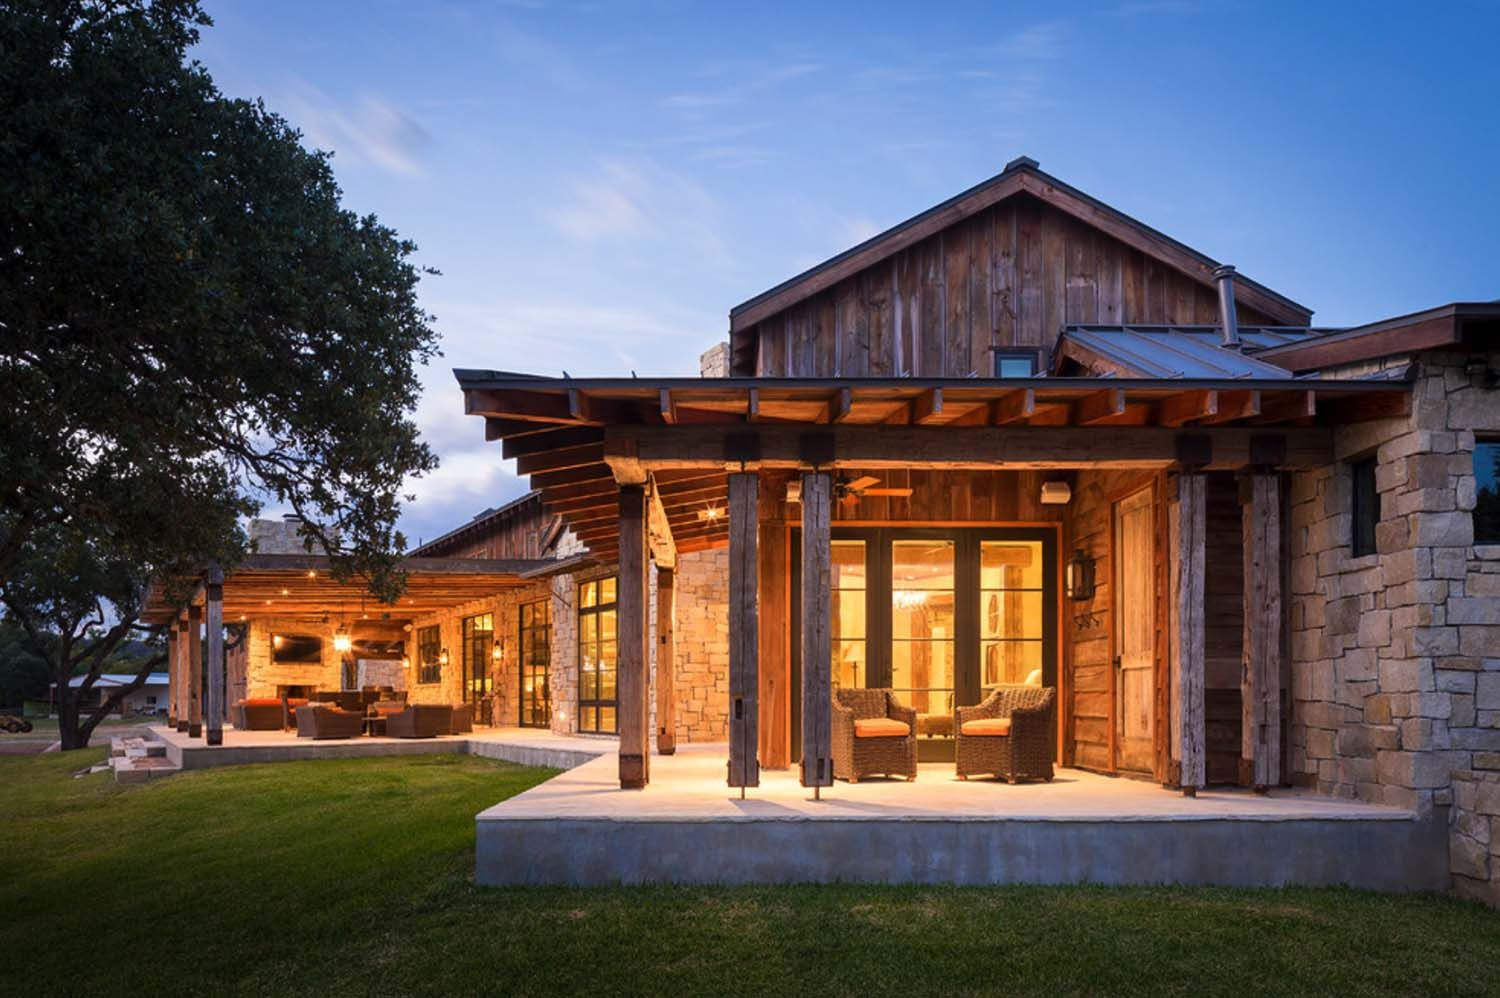 Modern rustic barn style retreat in texas hill country Texas home plans hill country